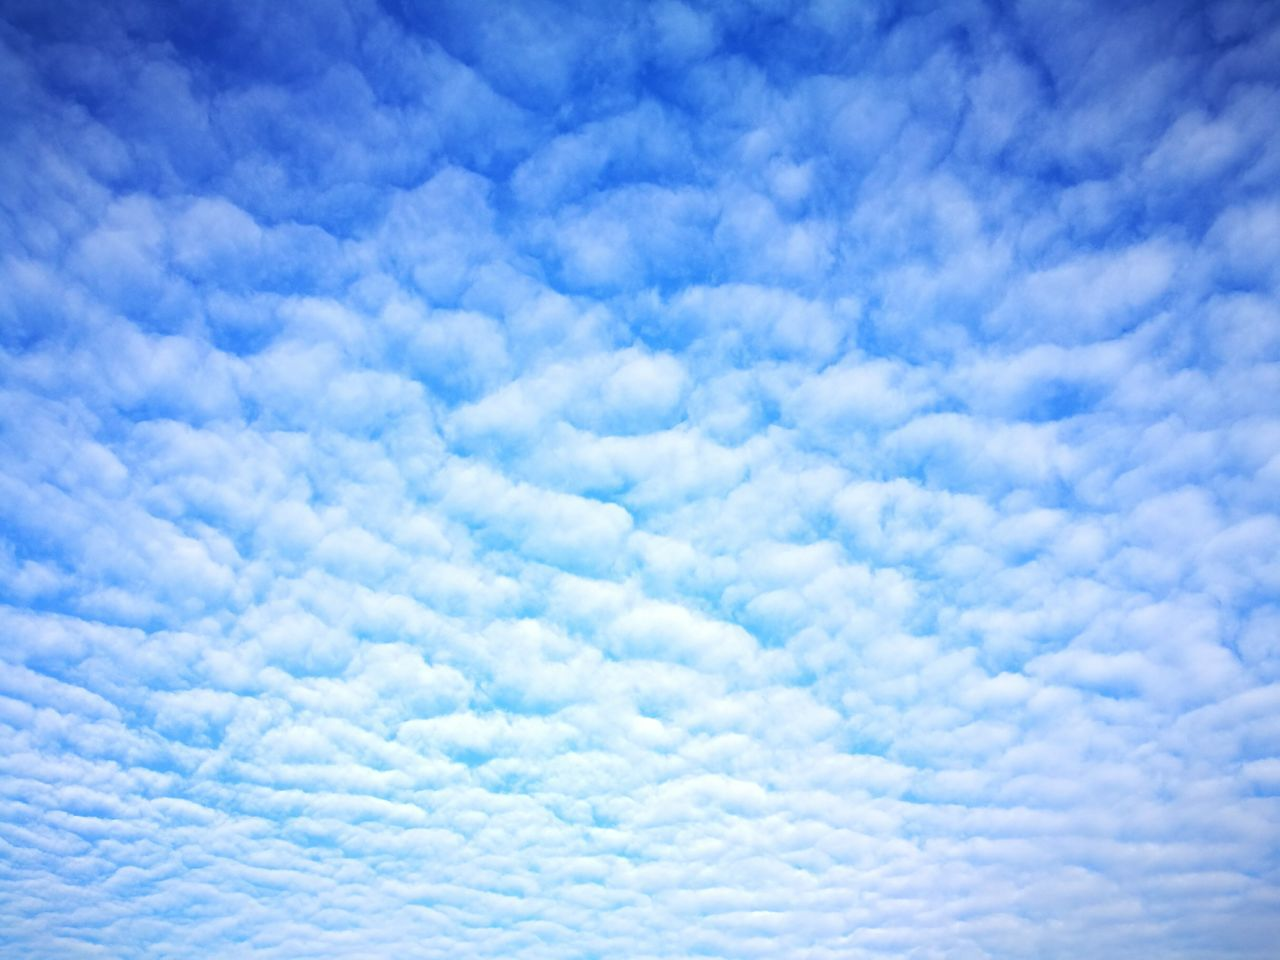 Clouds Backgrounds Blue Sky Nature Cloud - Sky White Color Heaven Fluffy Abstract Cloudscape Cumulus Cloud Textured  Sky Only Beauty In Nature No People Scenics Day Outdoors Full Frame Tranquility Simple Life Looking Up Patterns In Nature Snow Like Far Far Away